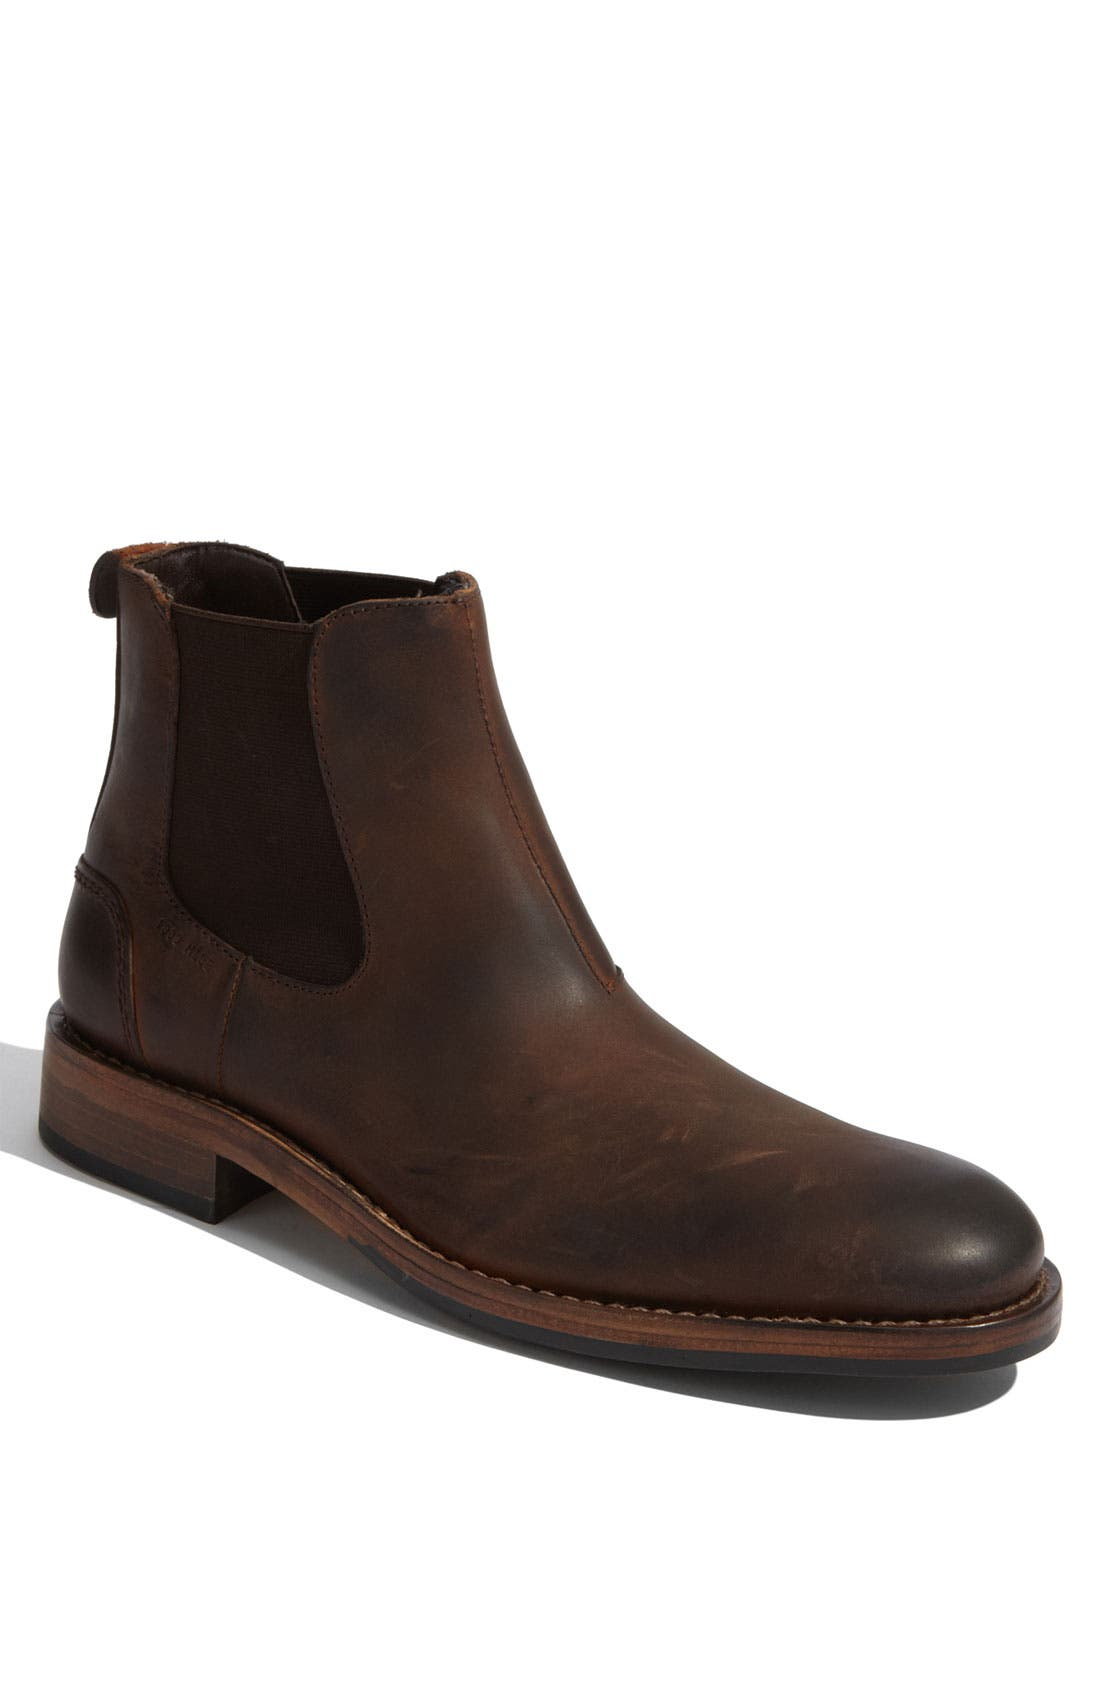 Wolverine 'Montague' Chelsea Boot